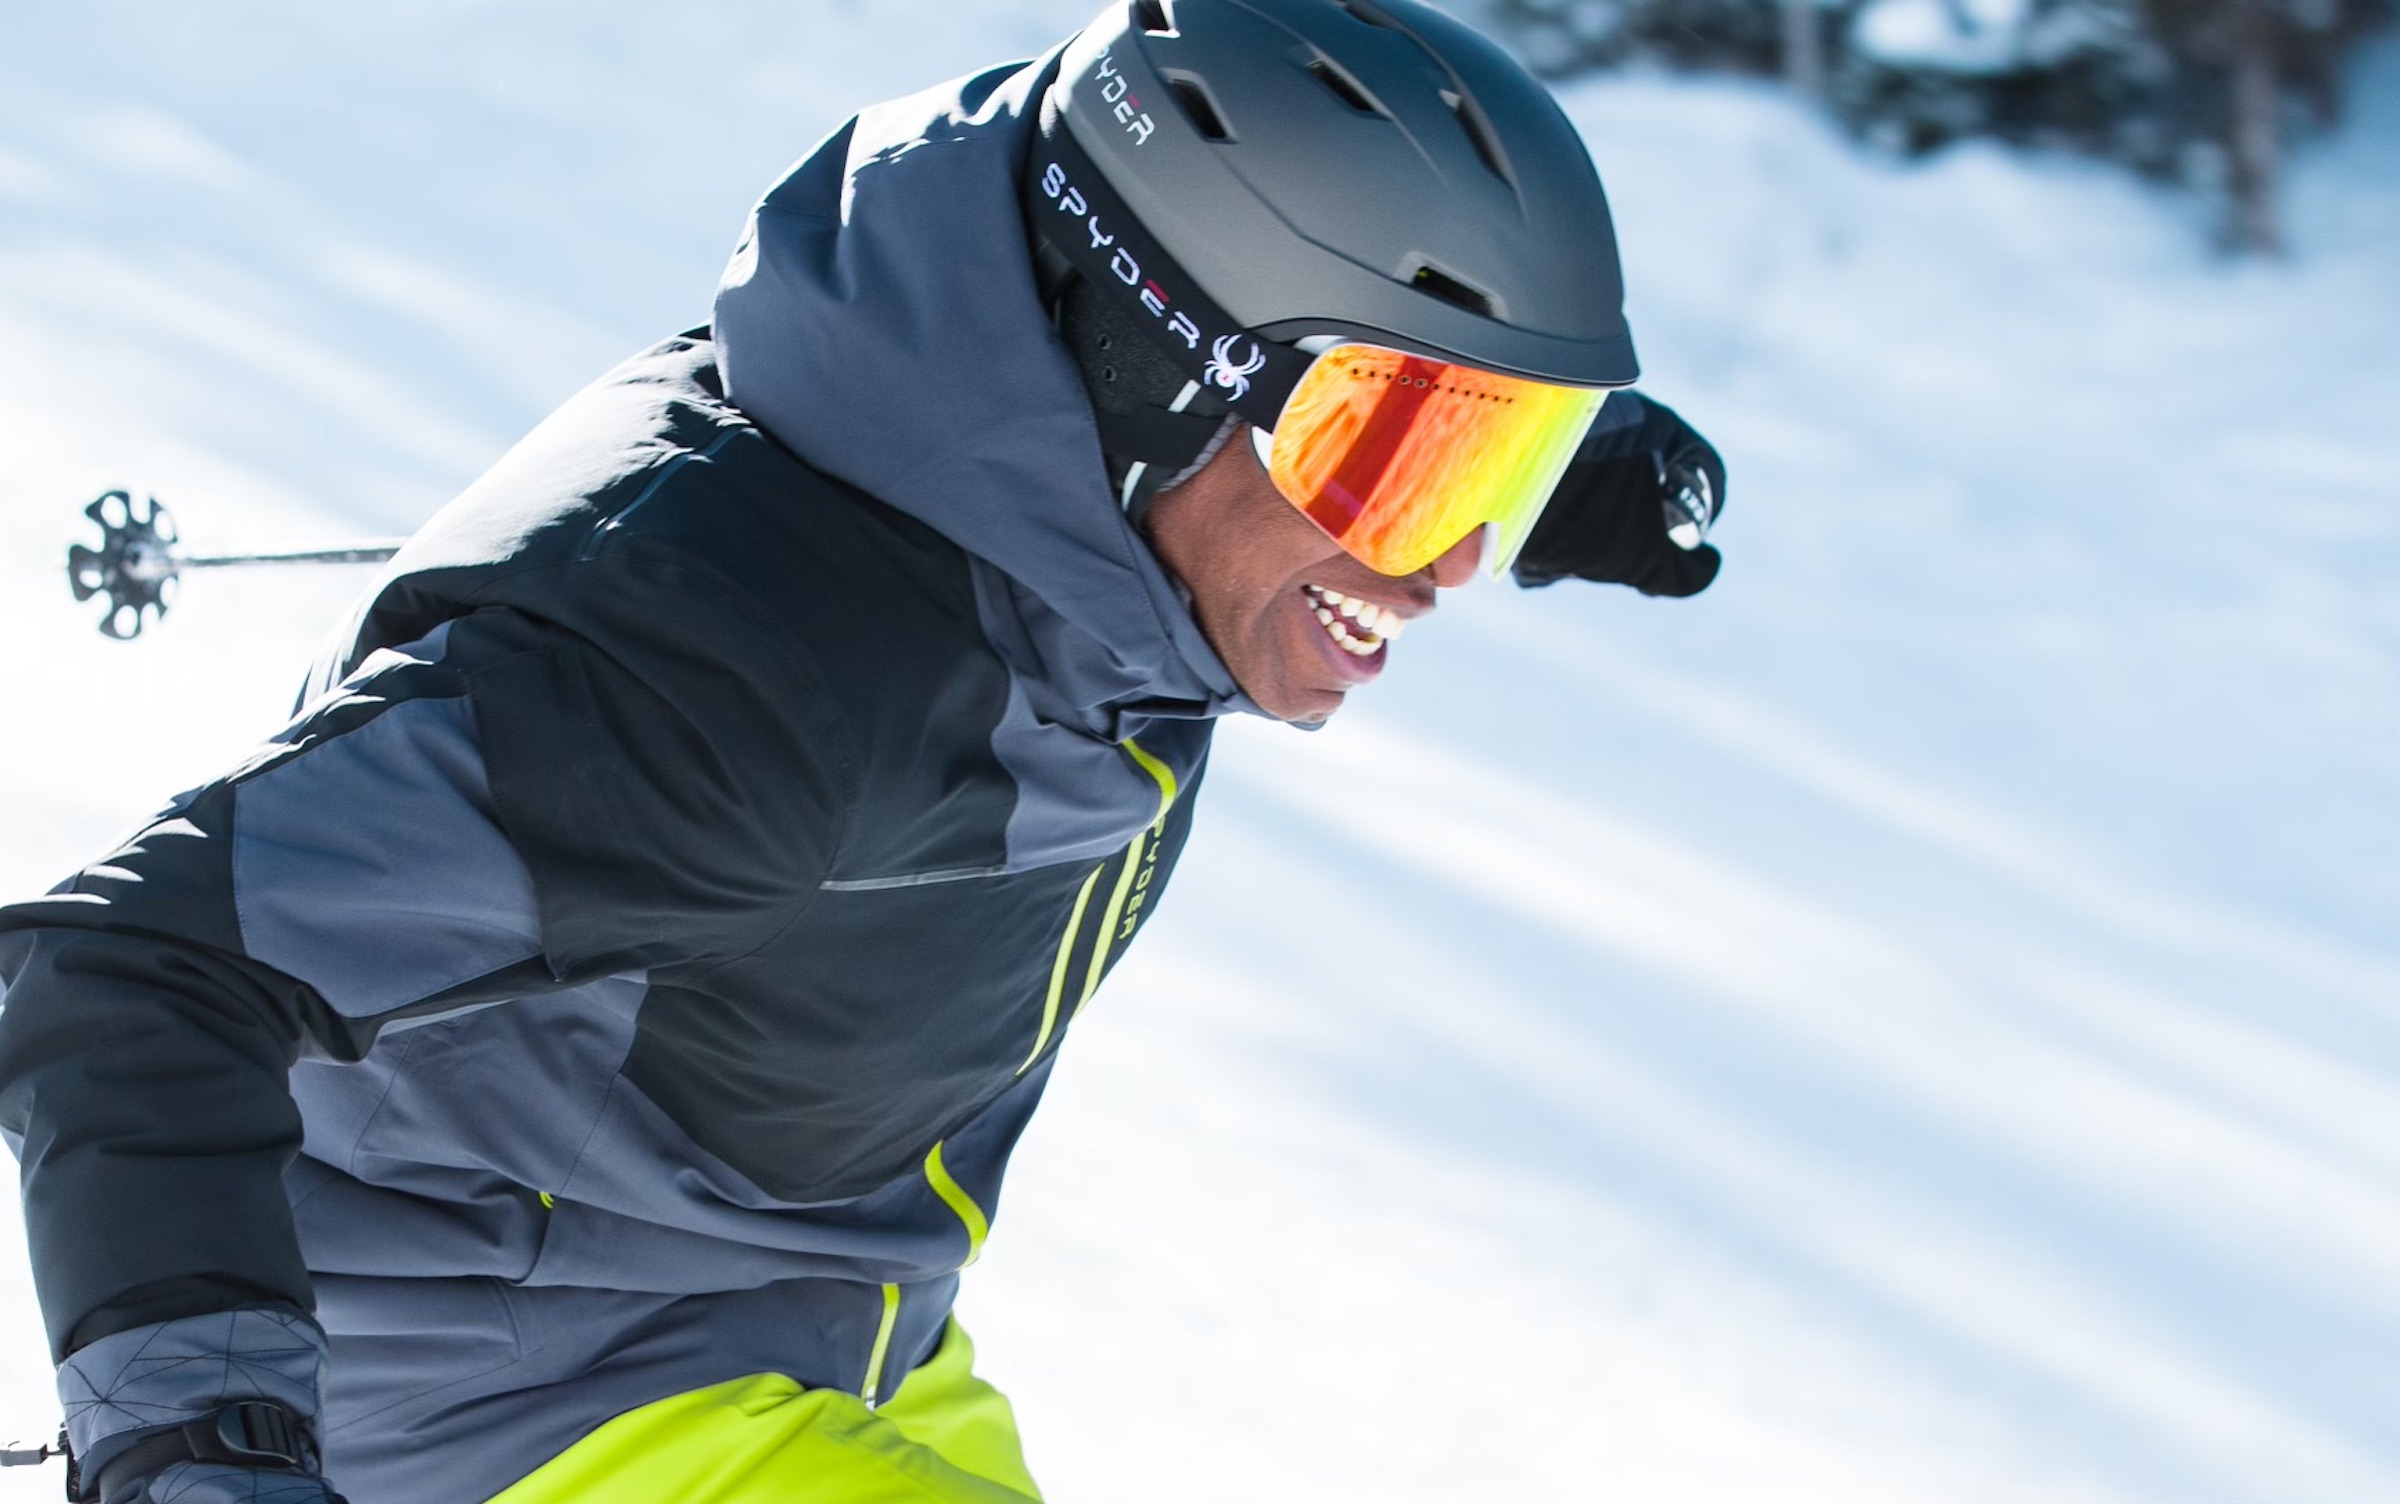 Black man wearing SPYDER goggles while downhill skiing and smiling